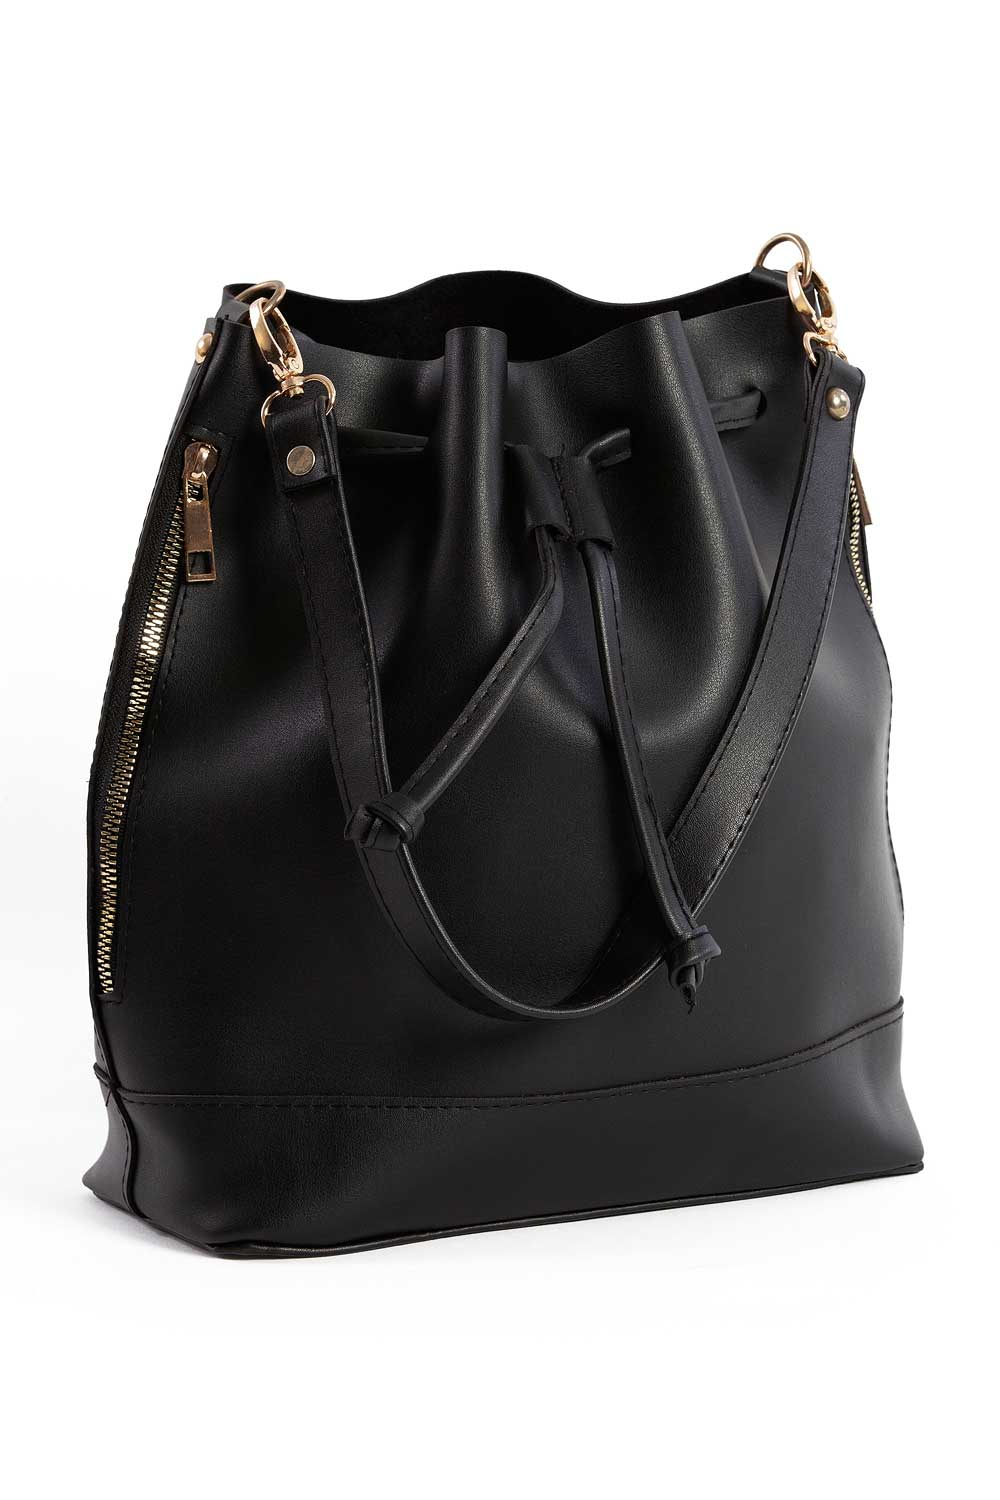 MIZALLE Drawstring Hand And Shoulder Bag (Black) (1)